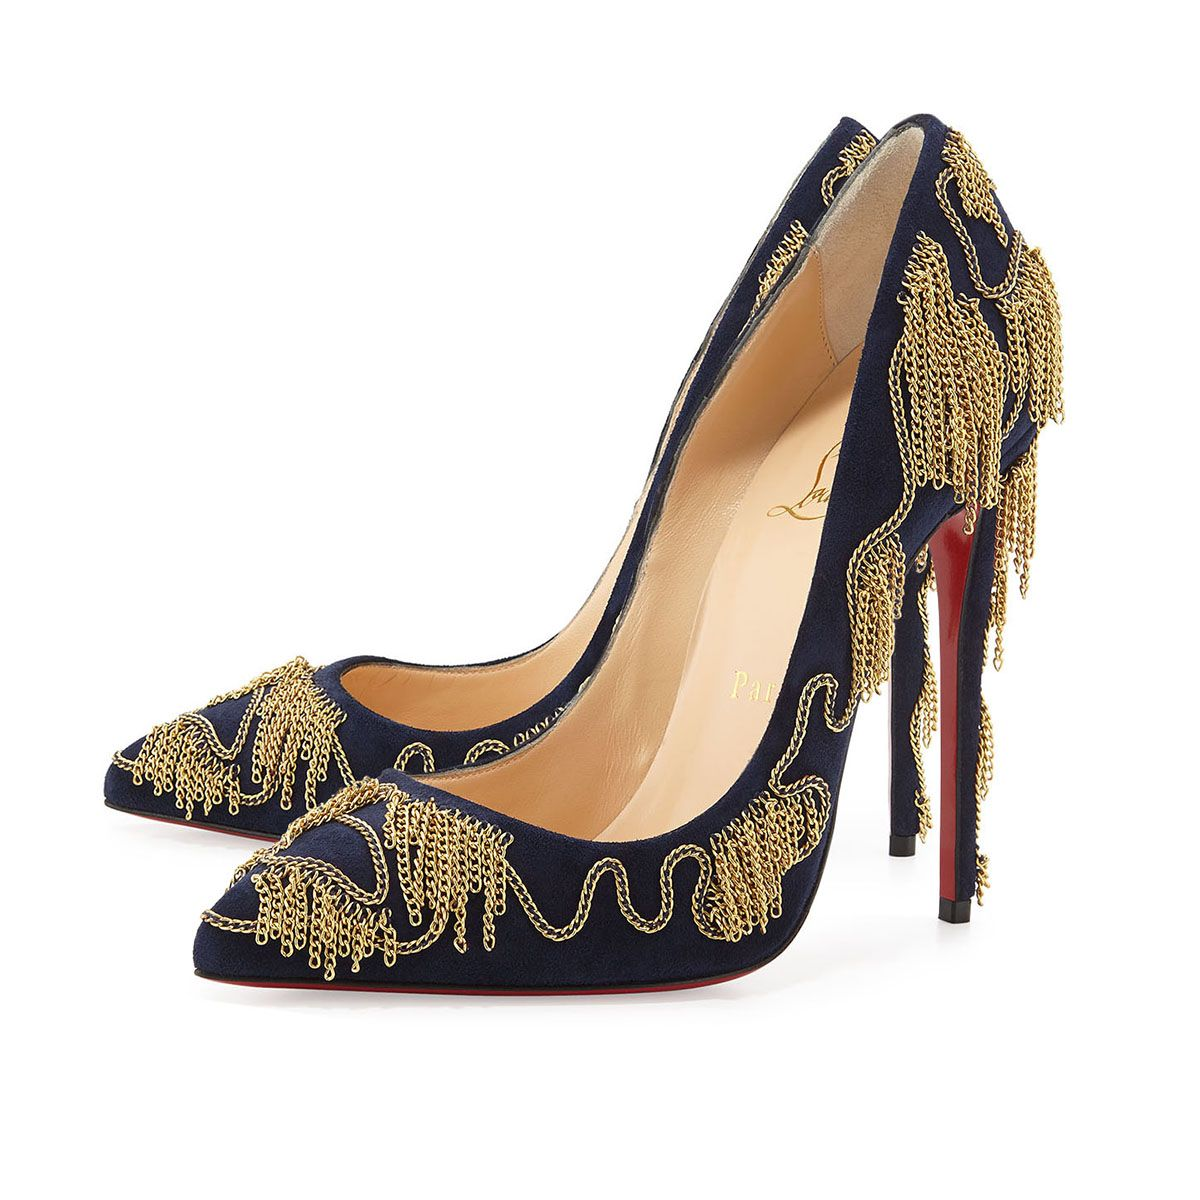 Christian Louboutin Dolly Party Chain-Detail Red Sole Pump, Nuit/Gold